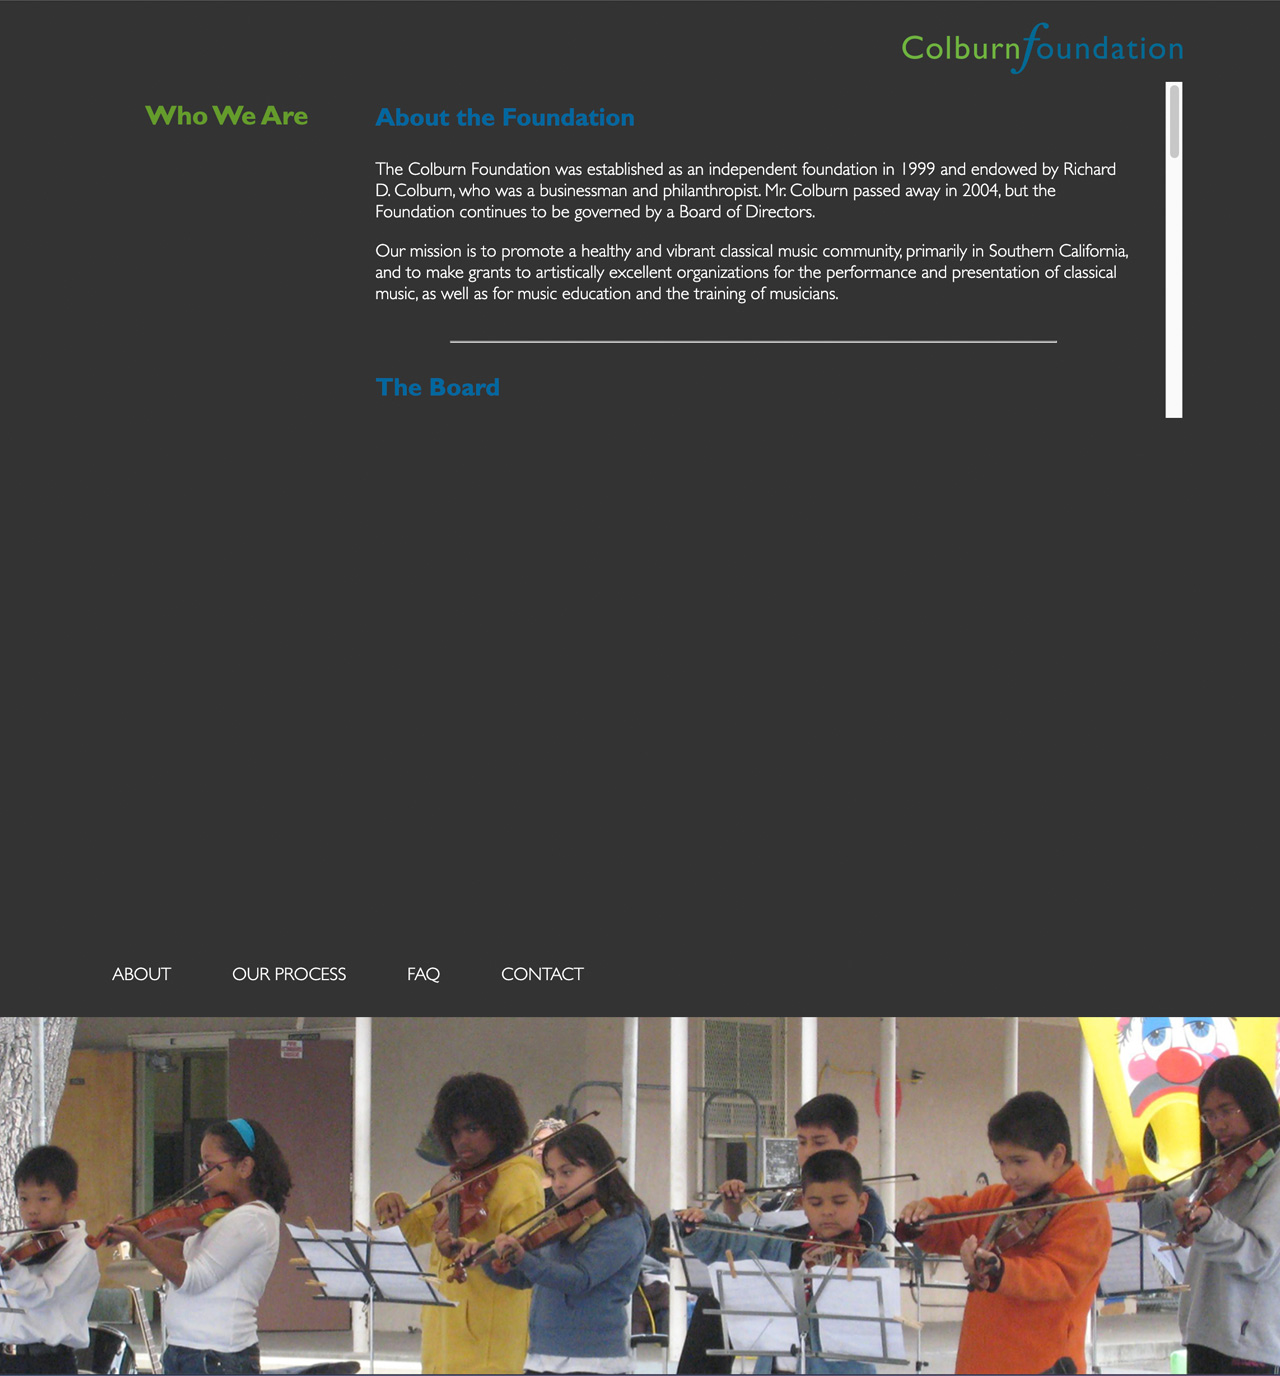 Seven young children play violins in photo on homepage of Colburn Foundation website.